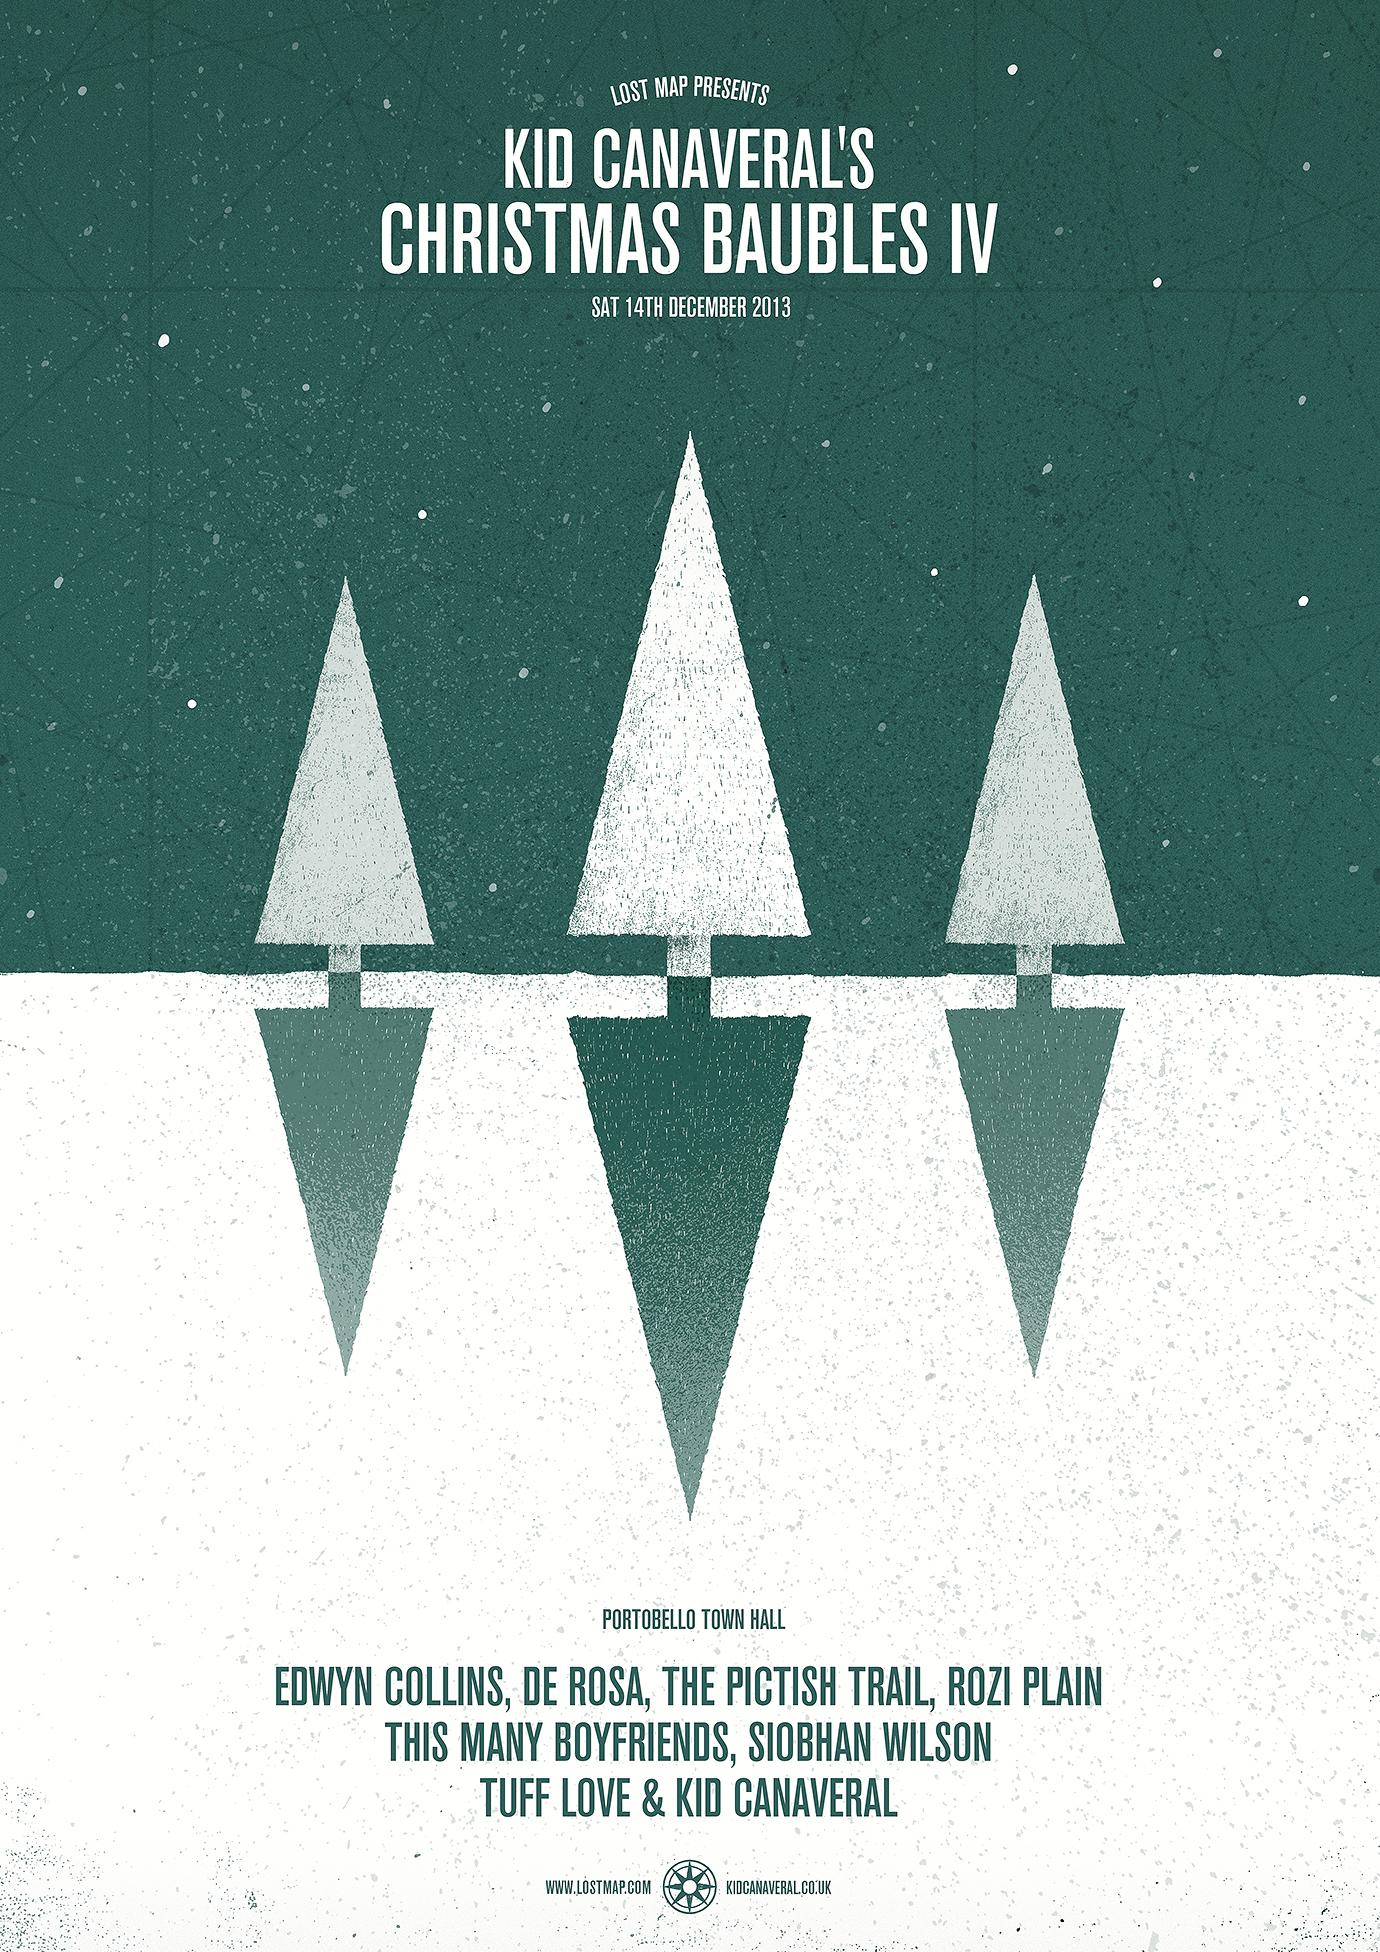 Kid Canaveral's Christmas Baubles Poster IV by David Galletly